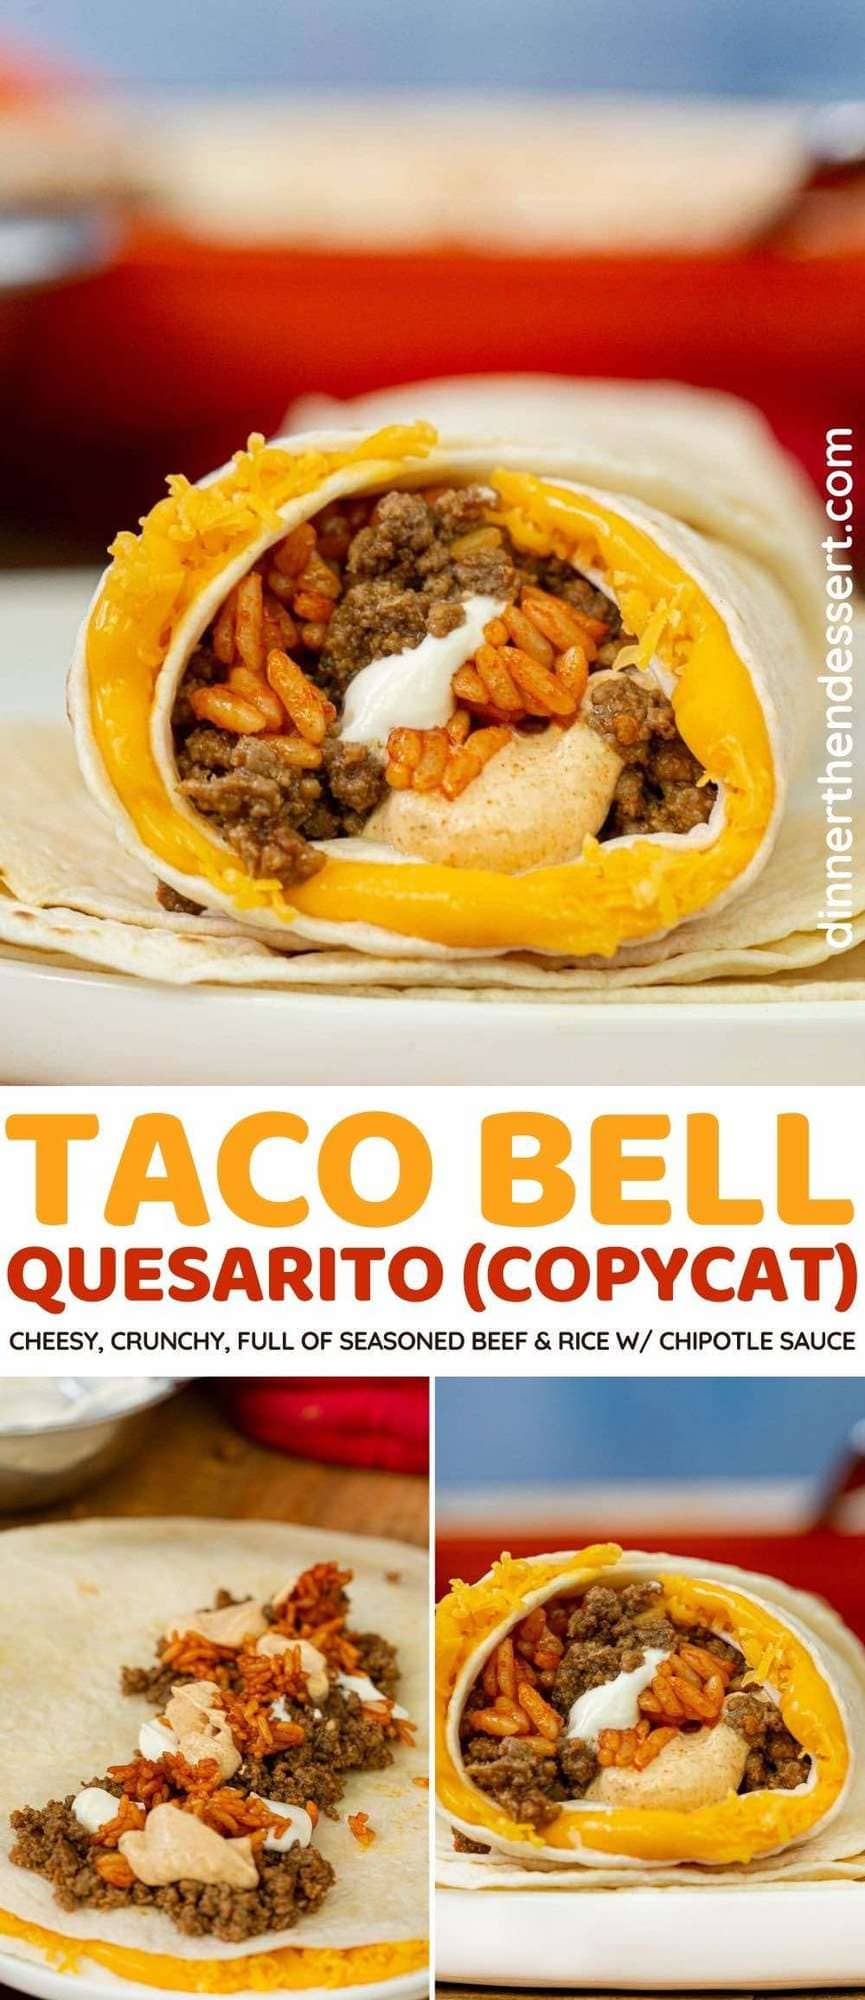 Taco Bell Quesarito copycat collage